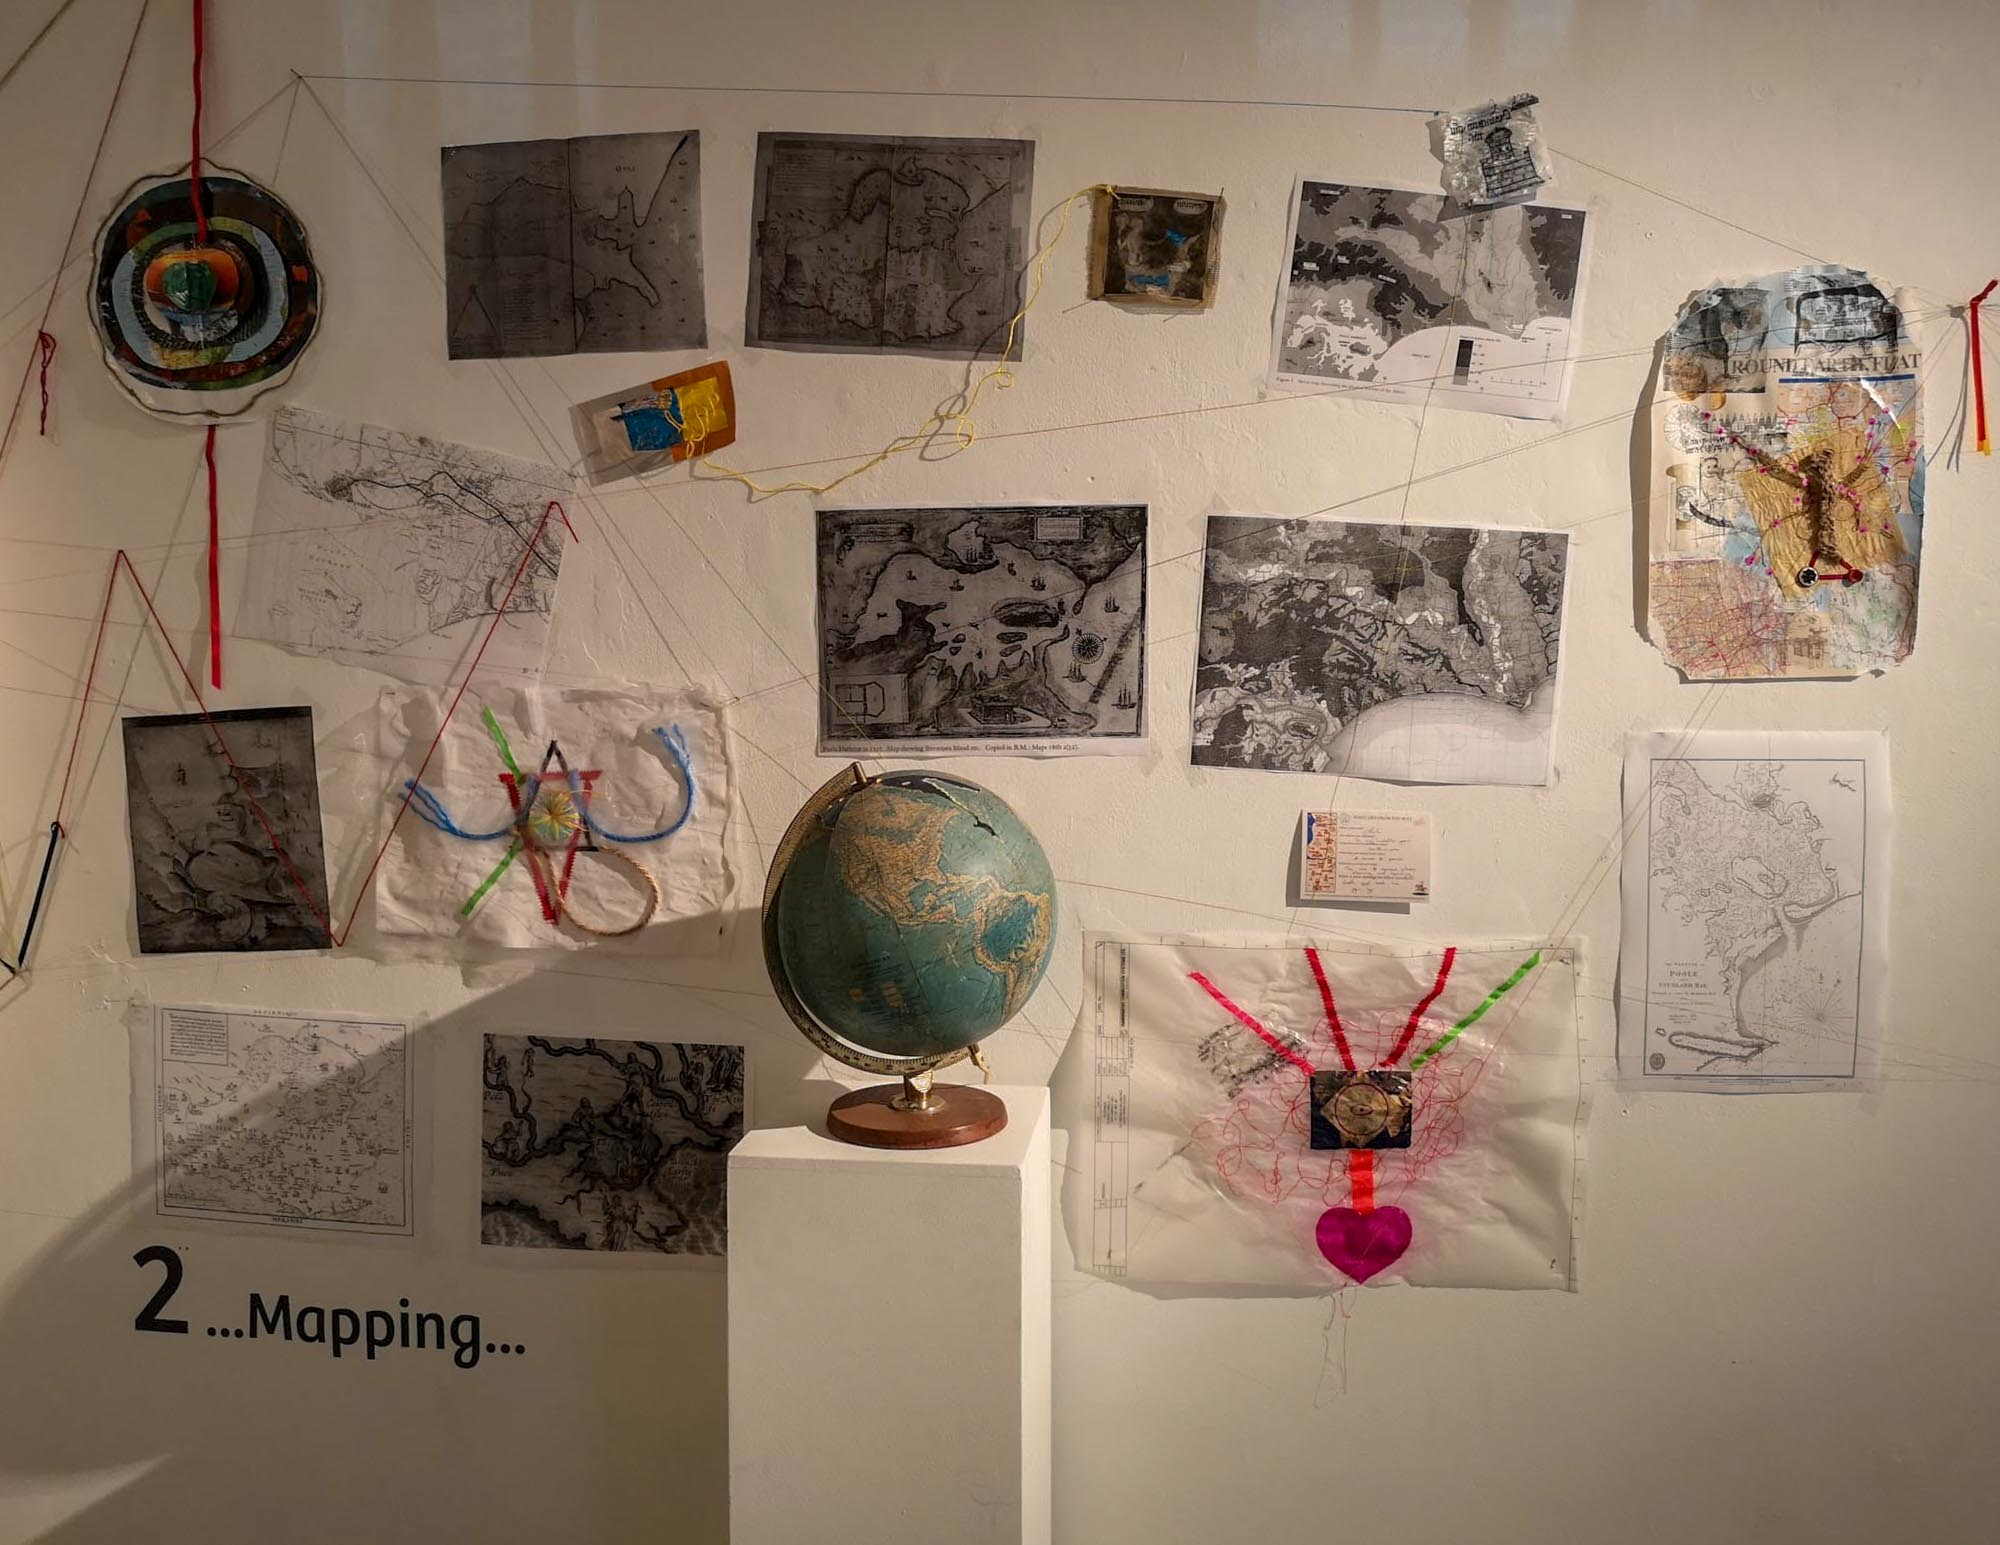 Medieval and Modern Mapping art exhibition and workshops by artist Michelle Rumney at Lighthouse Pooles Centre for the Arts